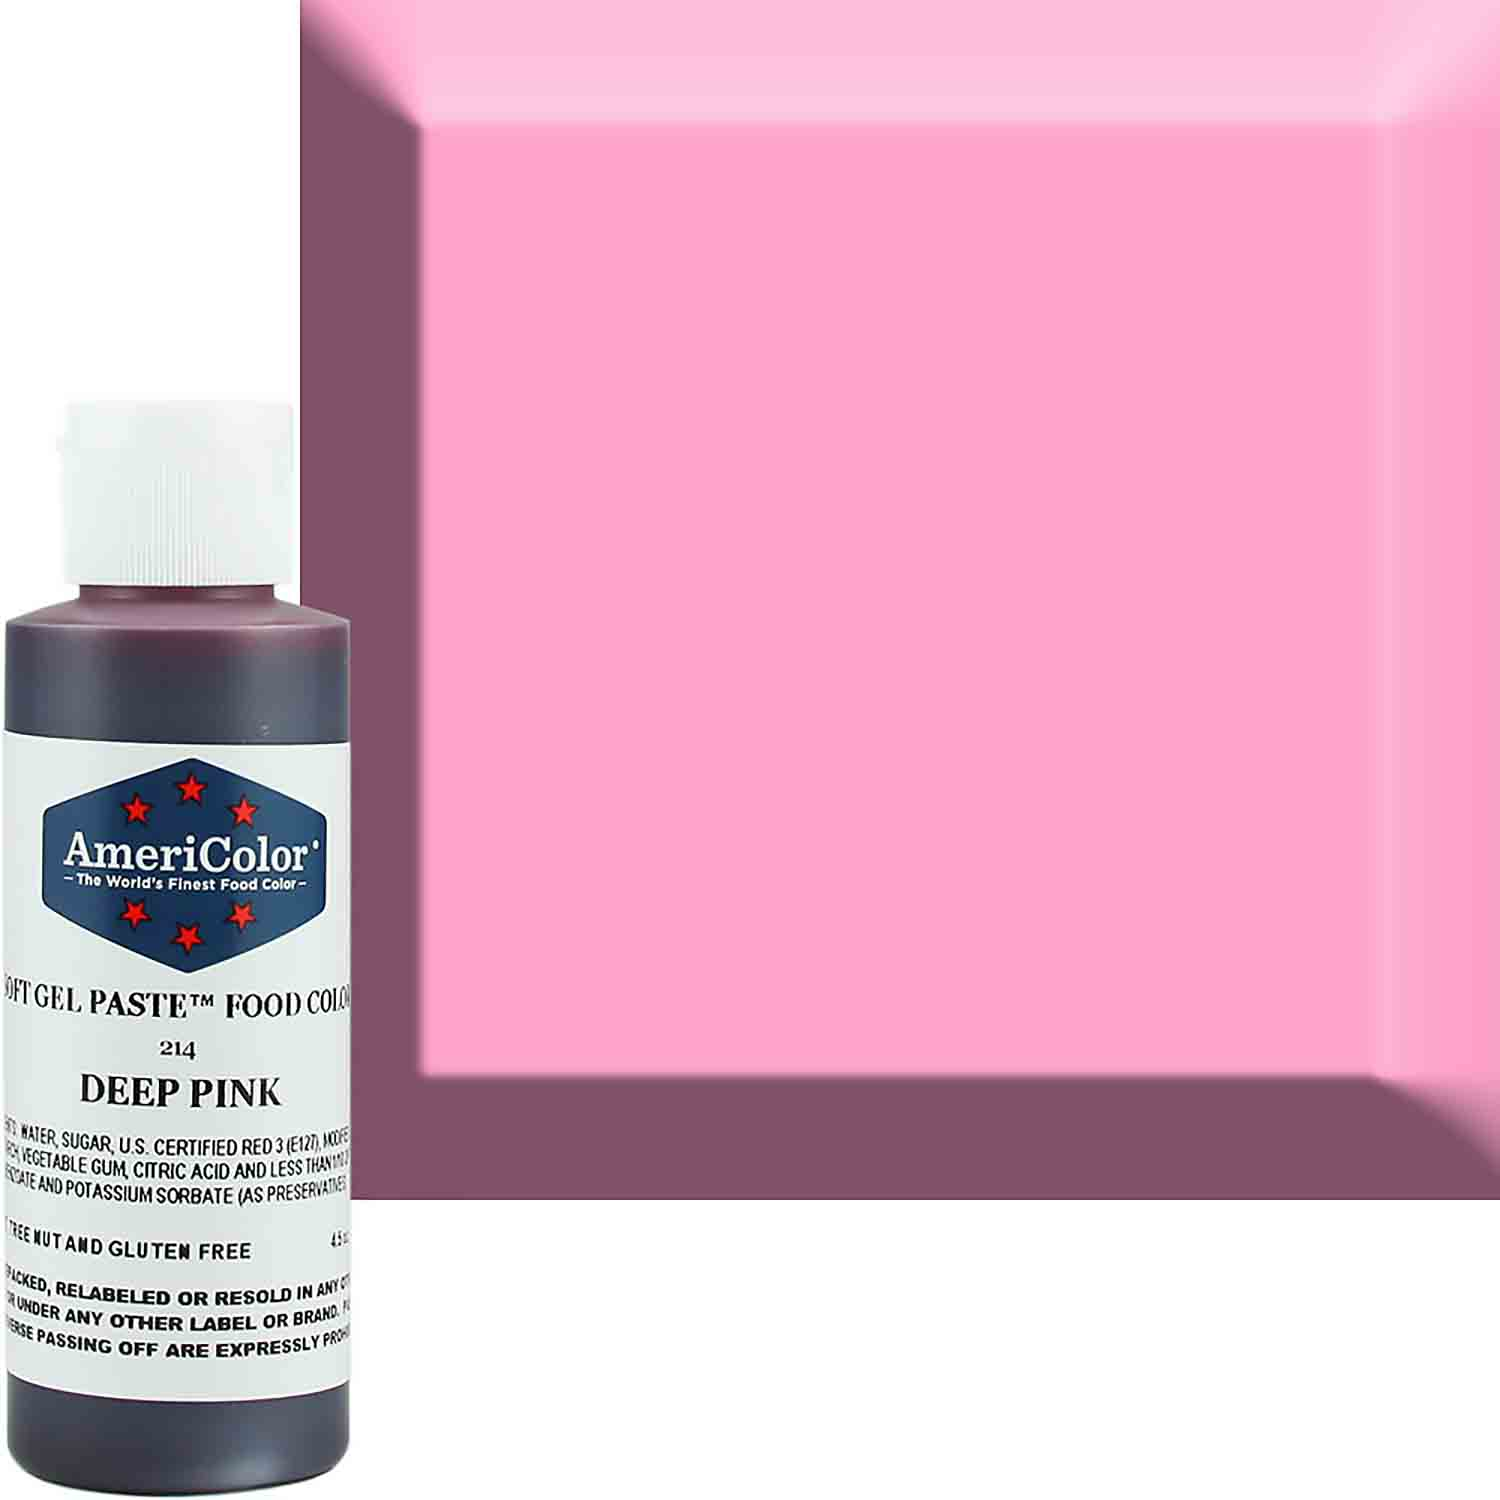 Deep Pink Soft Gel Paste™ Food Color